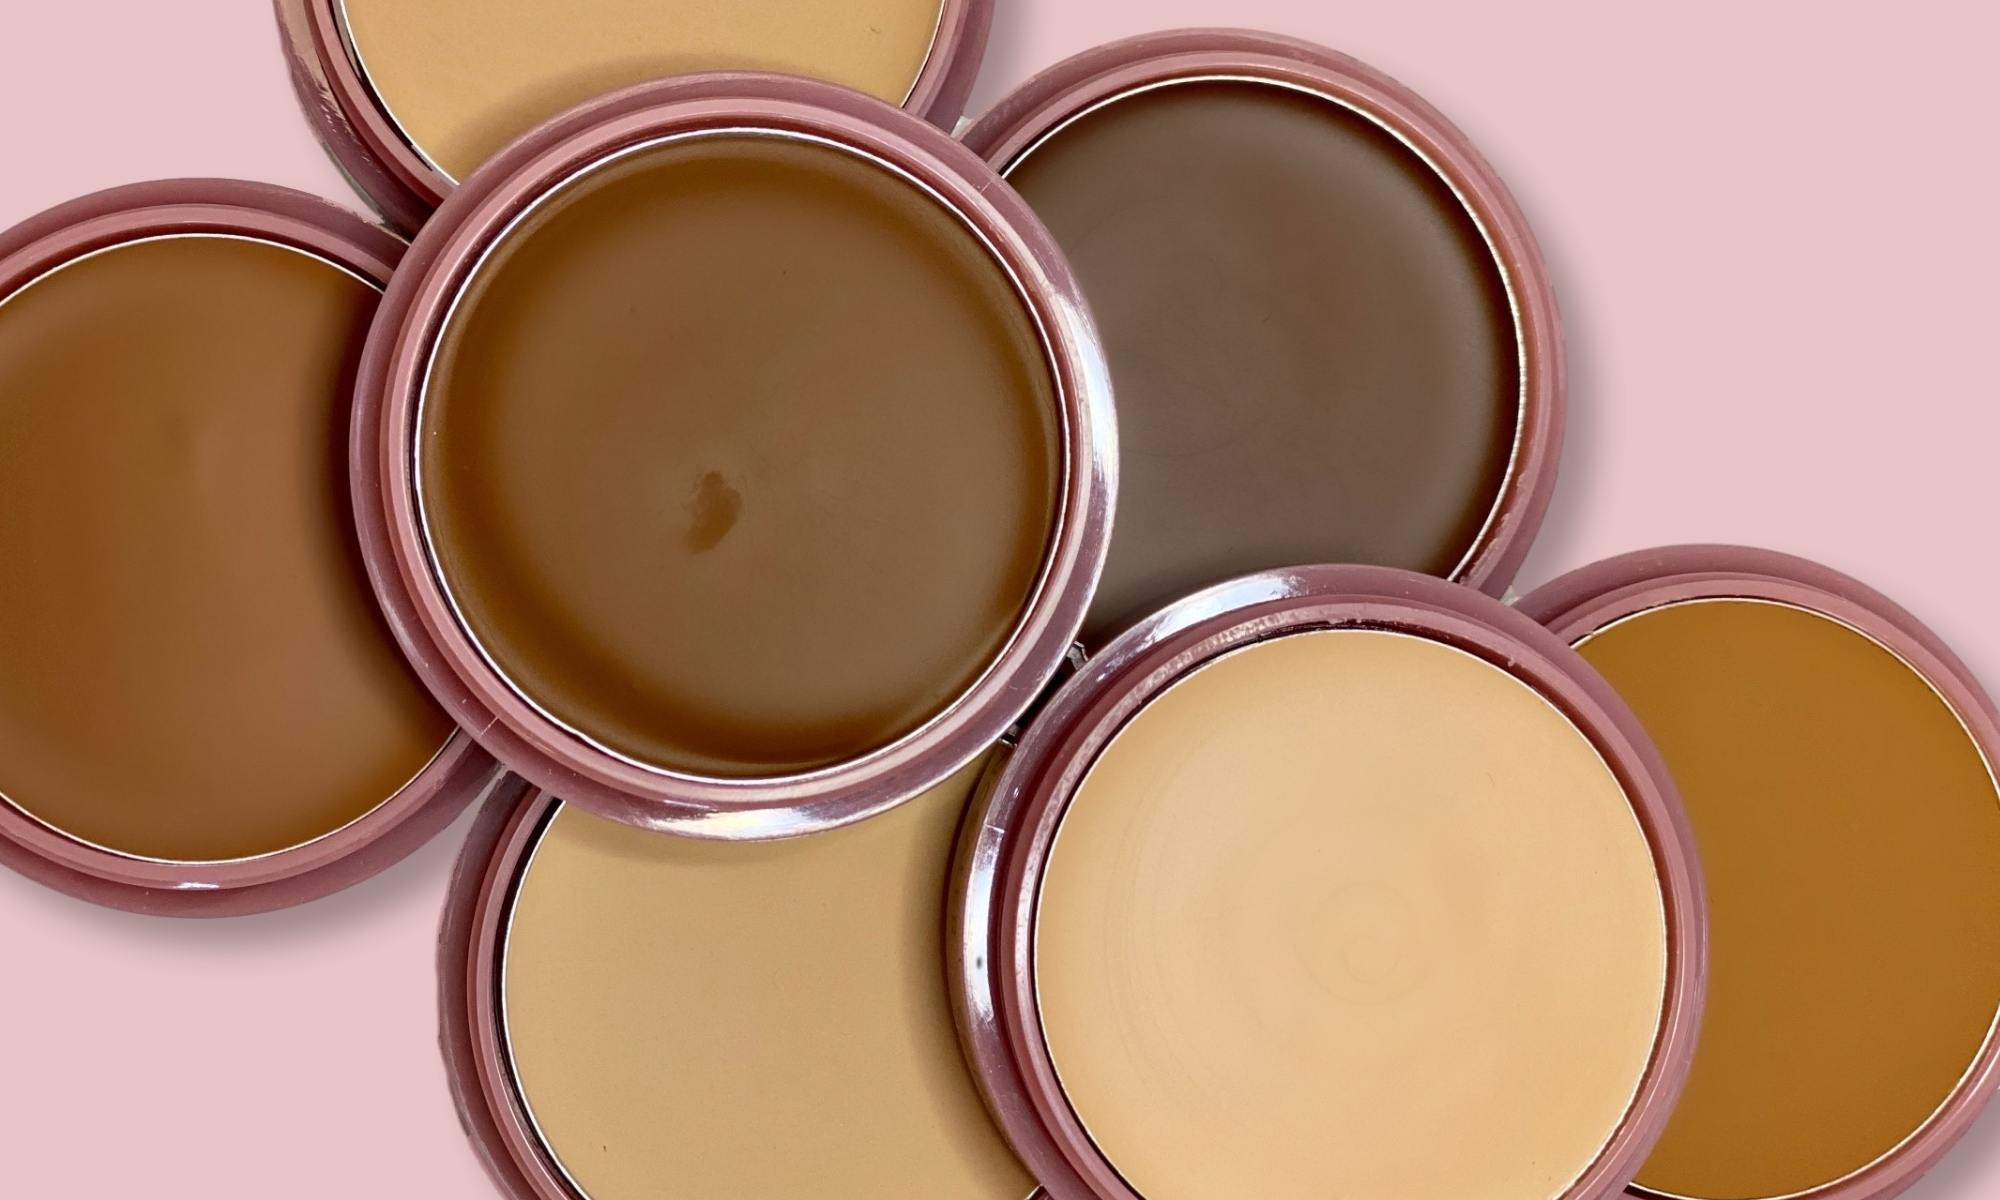 Cream Concealer: Benefits